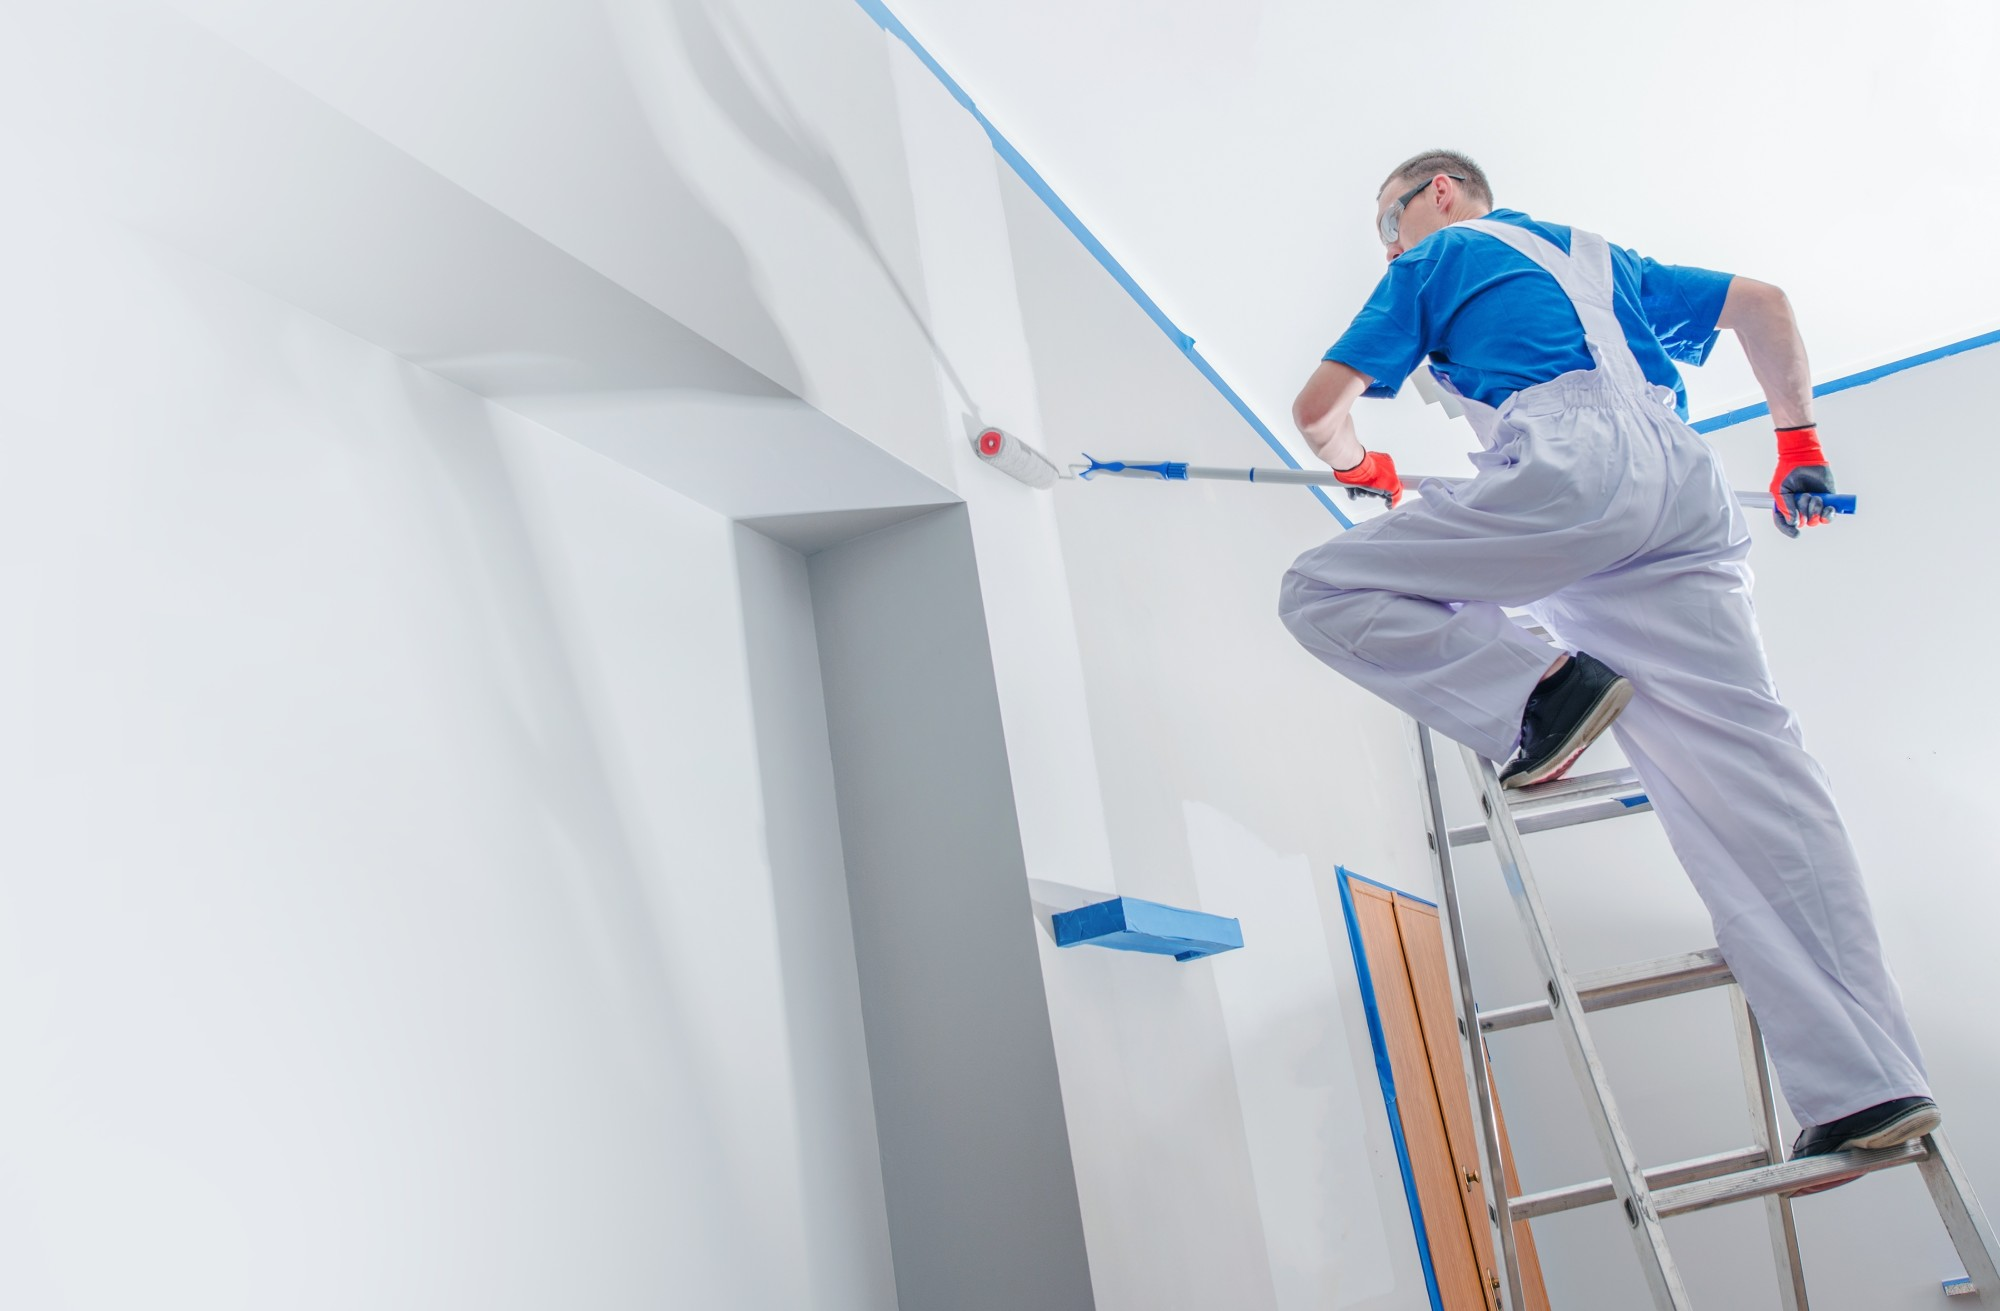 5 Benefits of Hiring a Painting Company